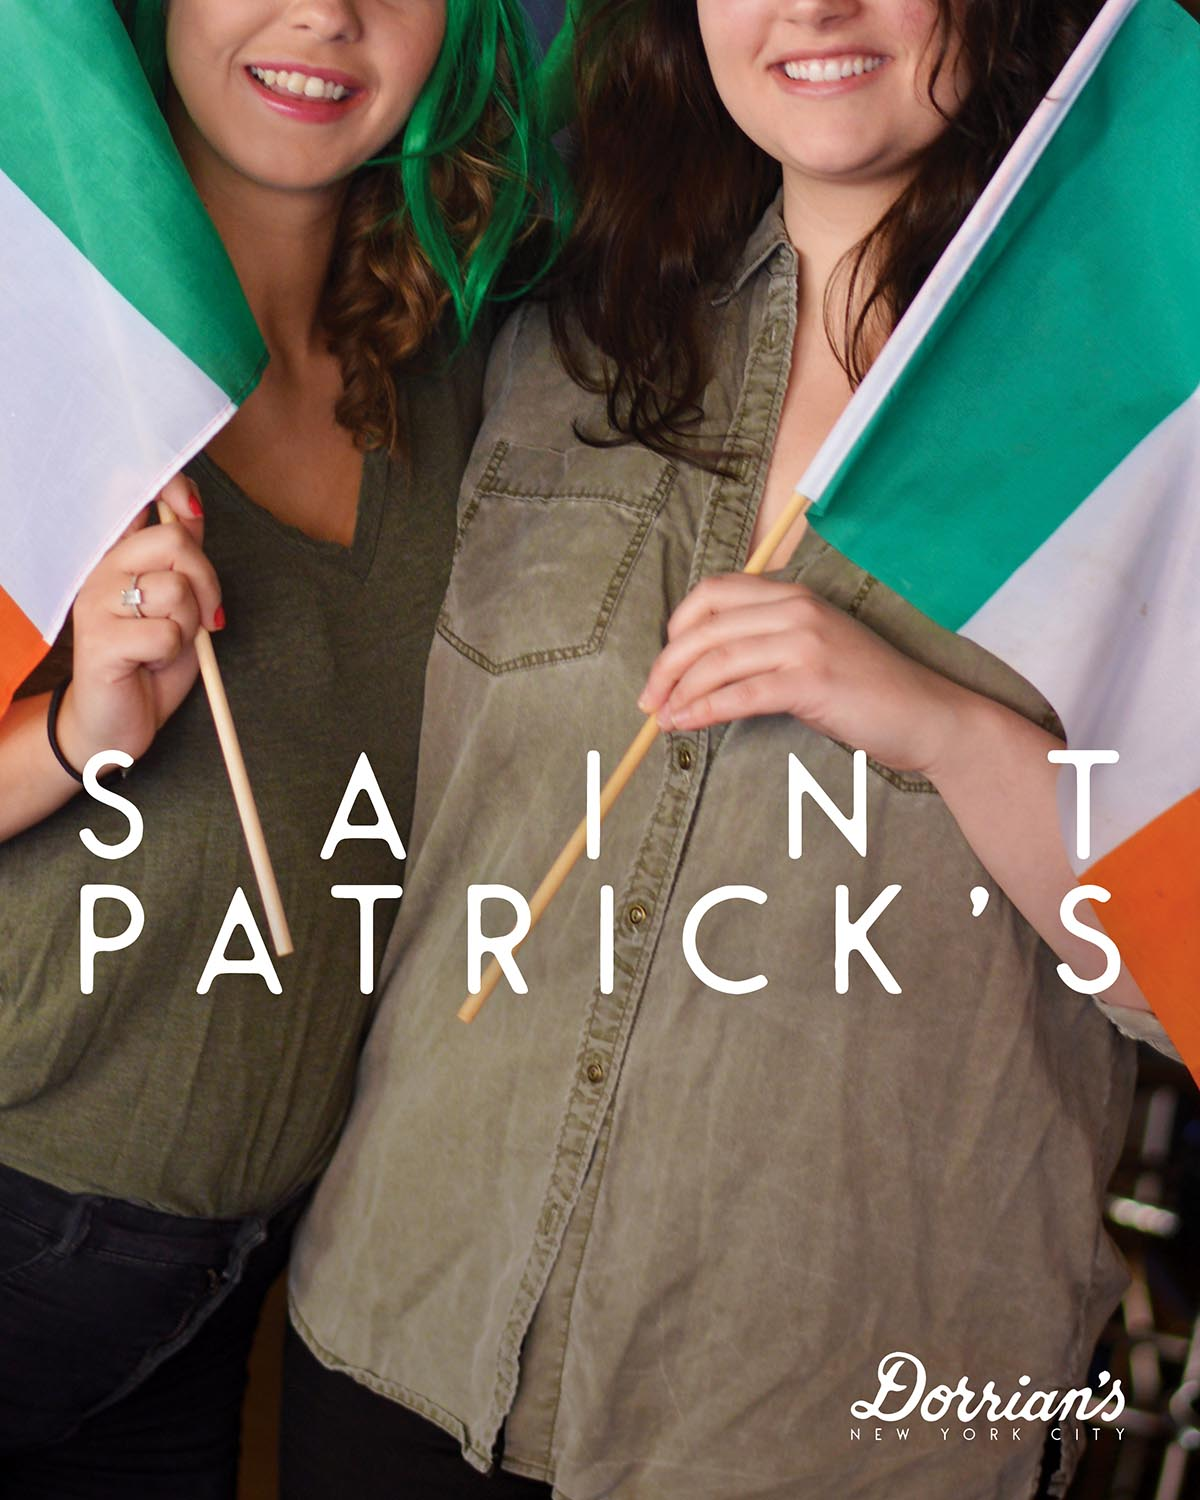 drh_nyc-2019-insta-event-holiday-saint-patricks-1-1500.jpg